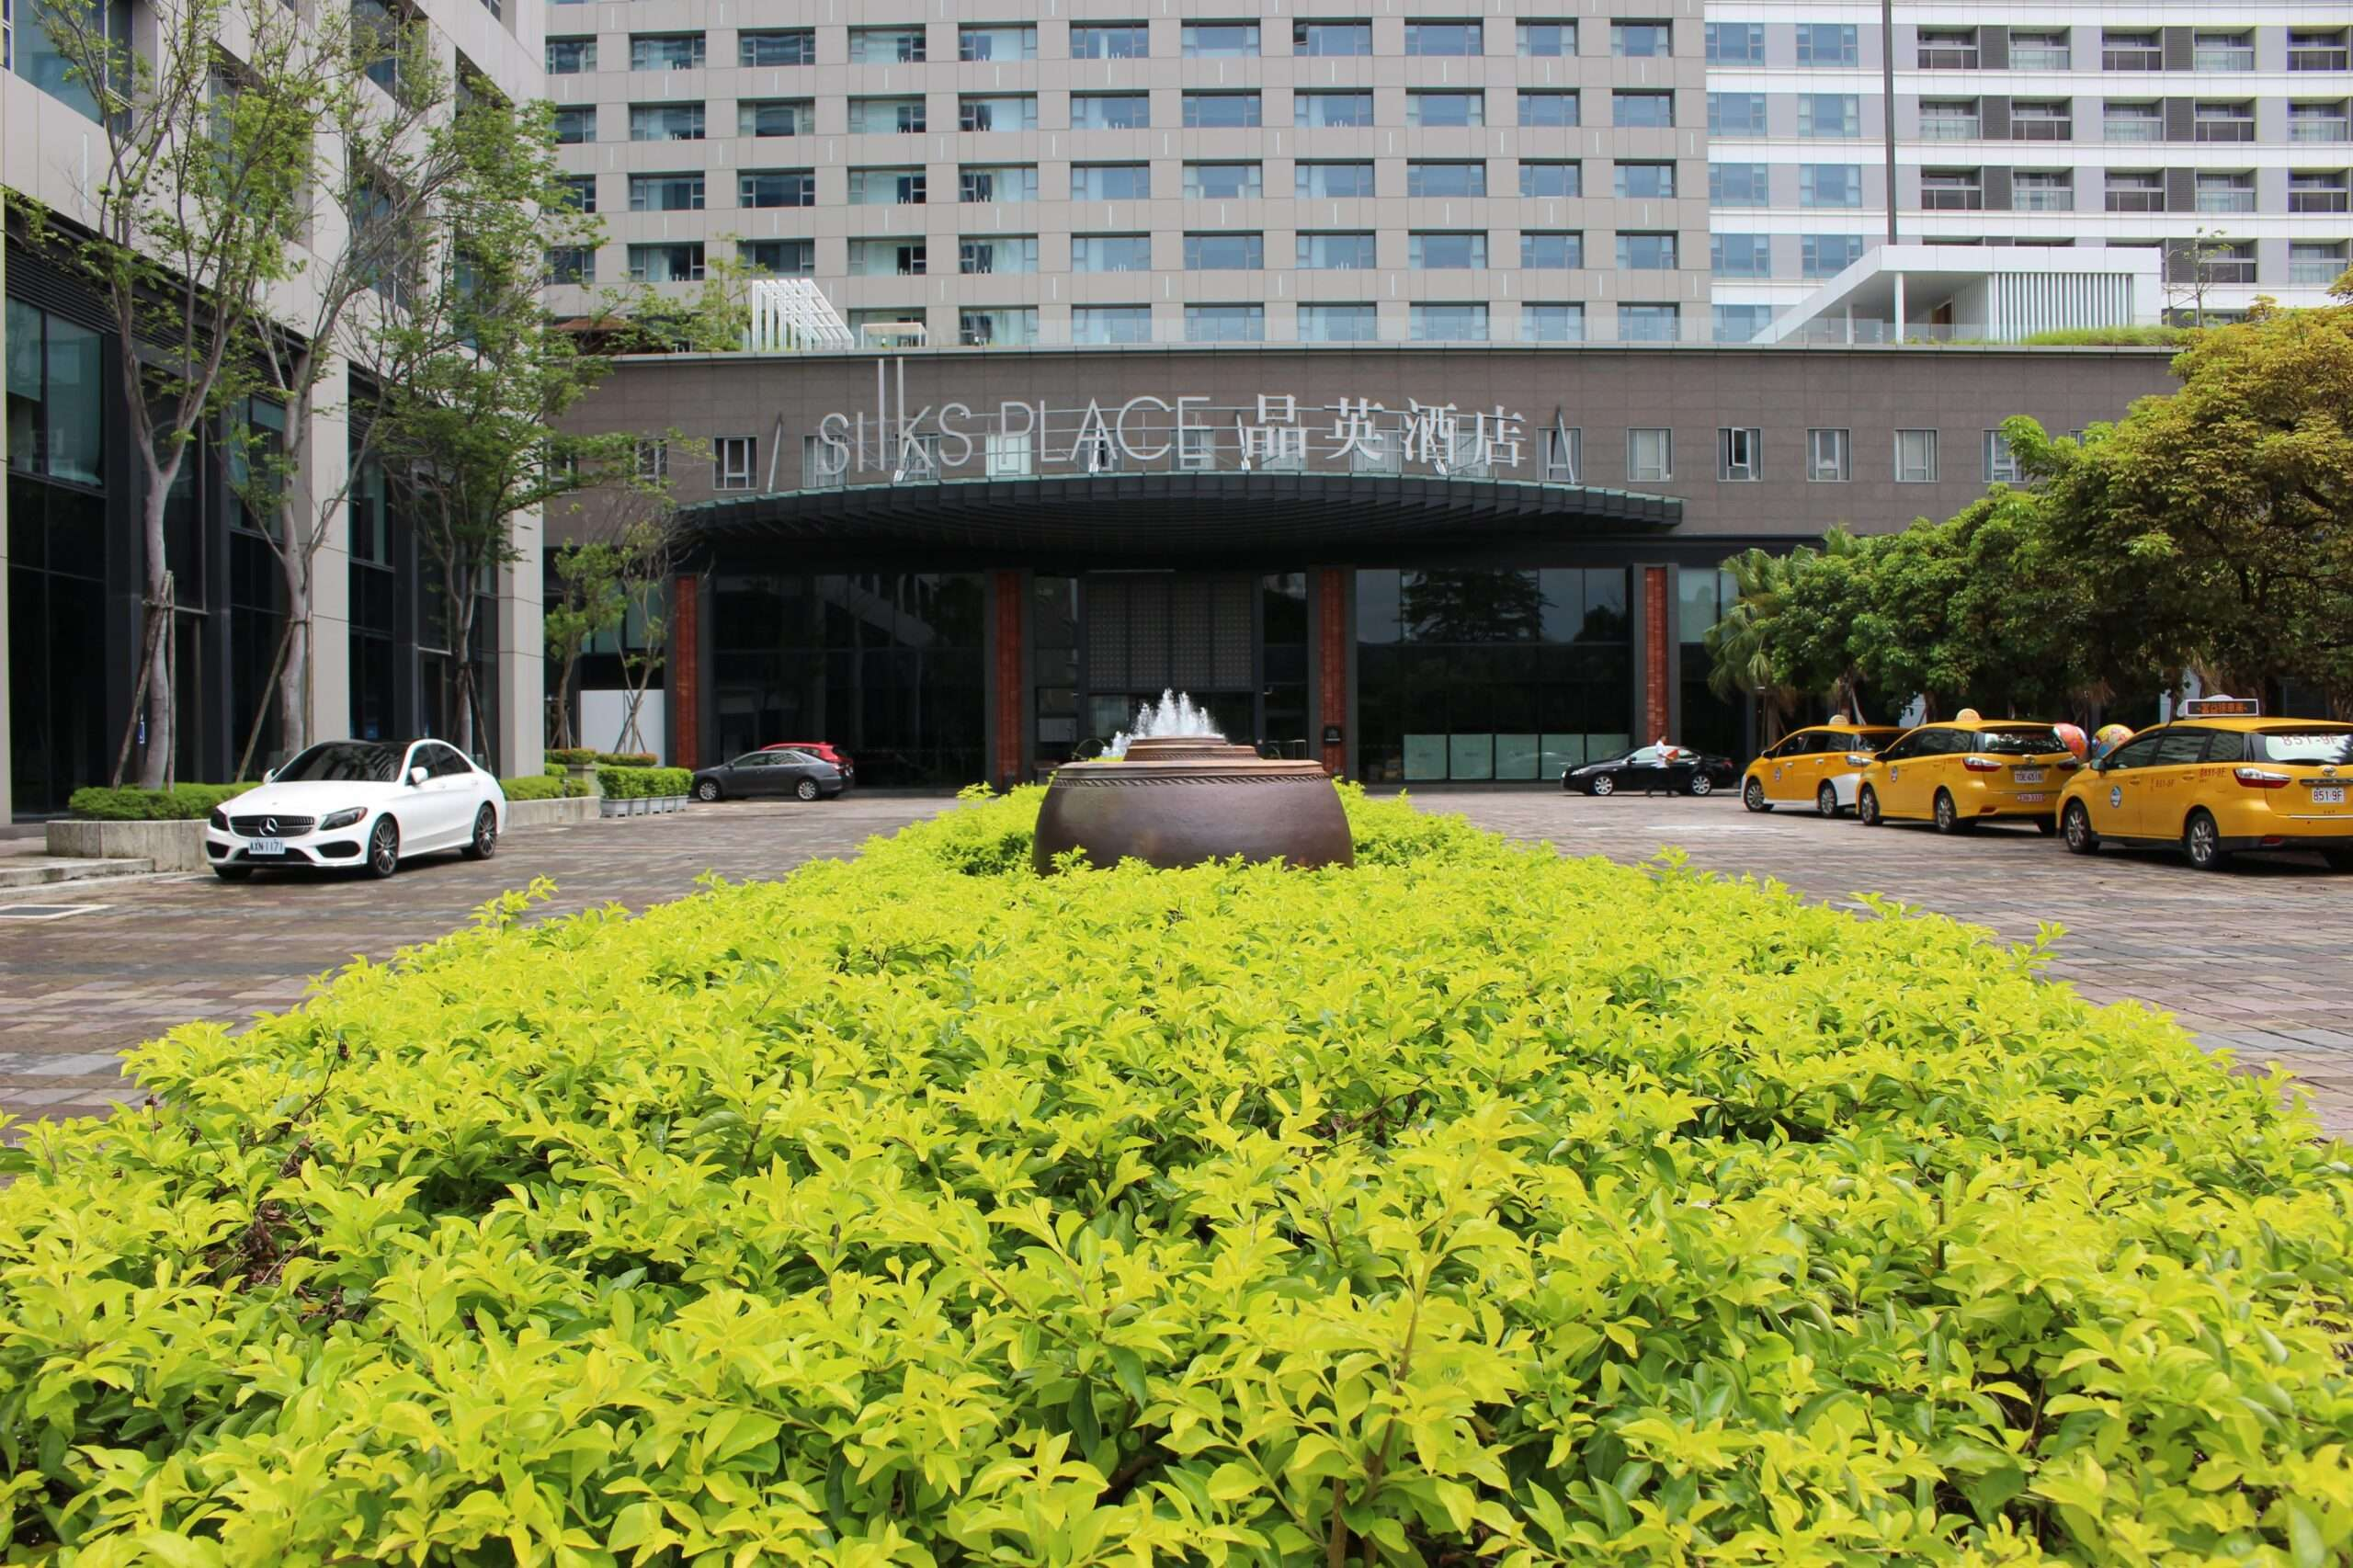 Long green bush leads to the entrance of Silks Place hotel in Tainan